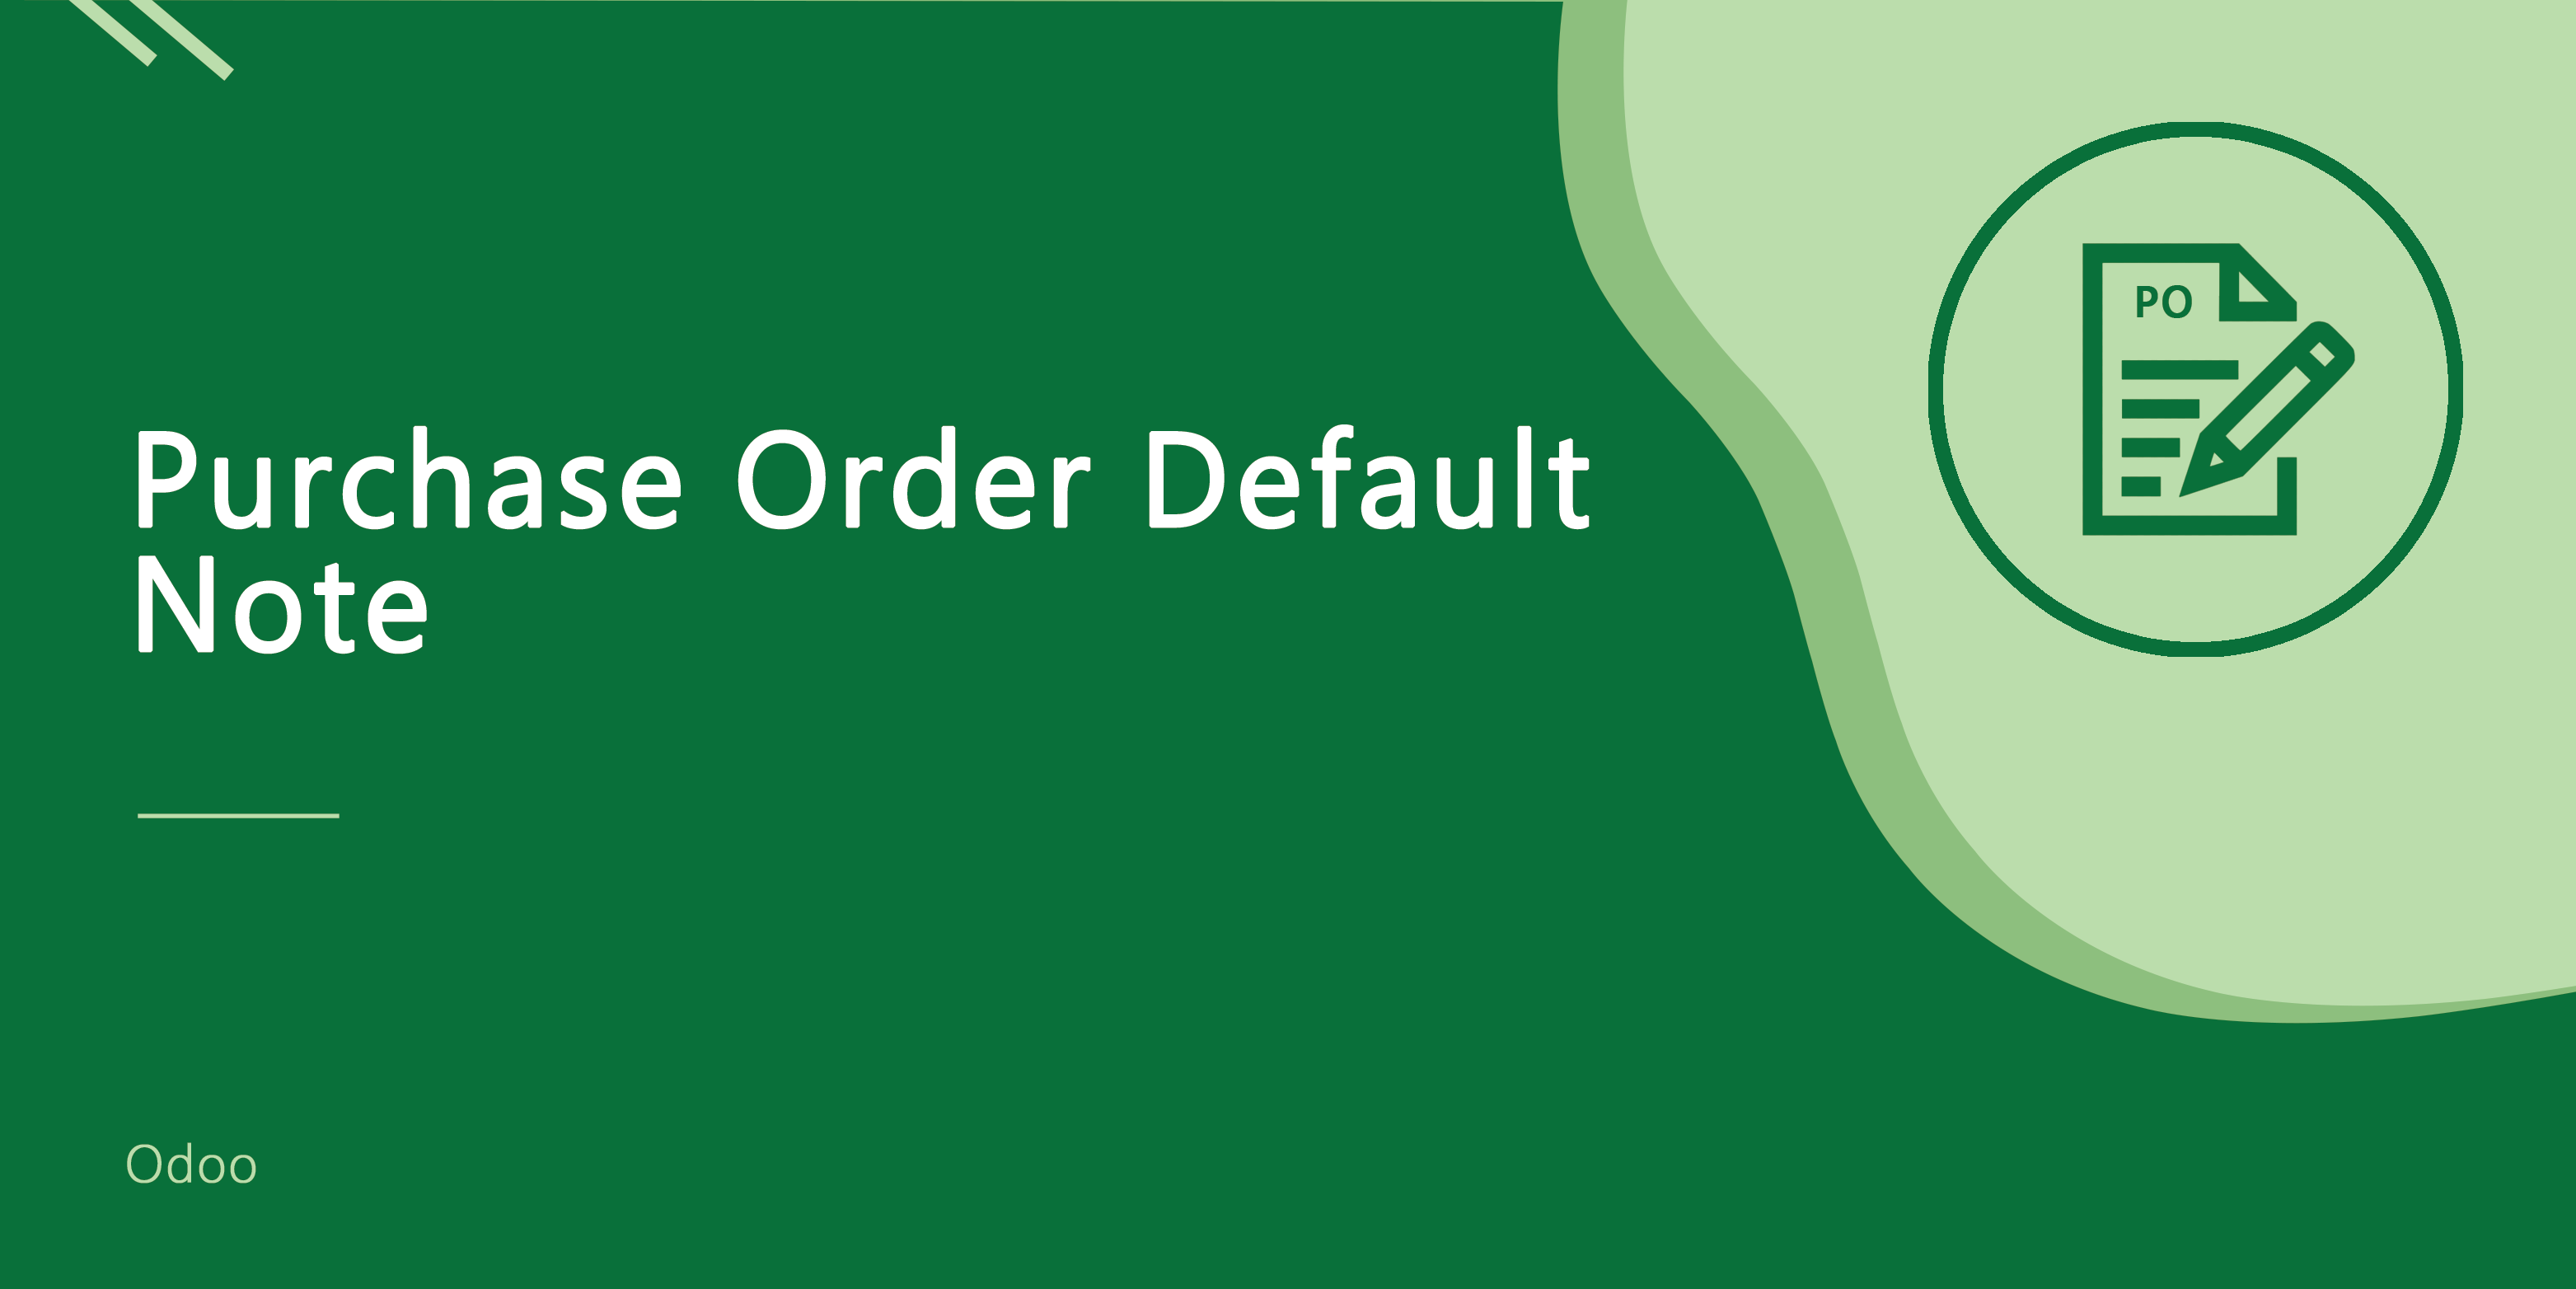 Purchase Order Default Note